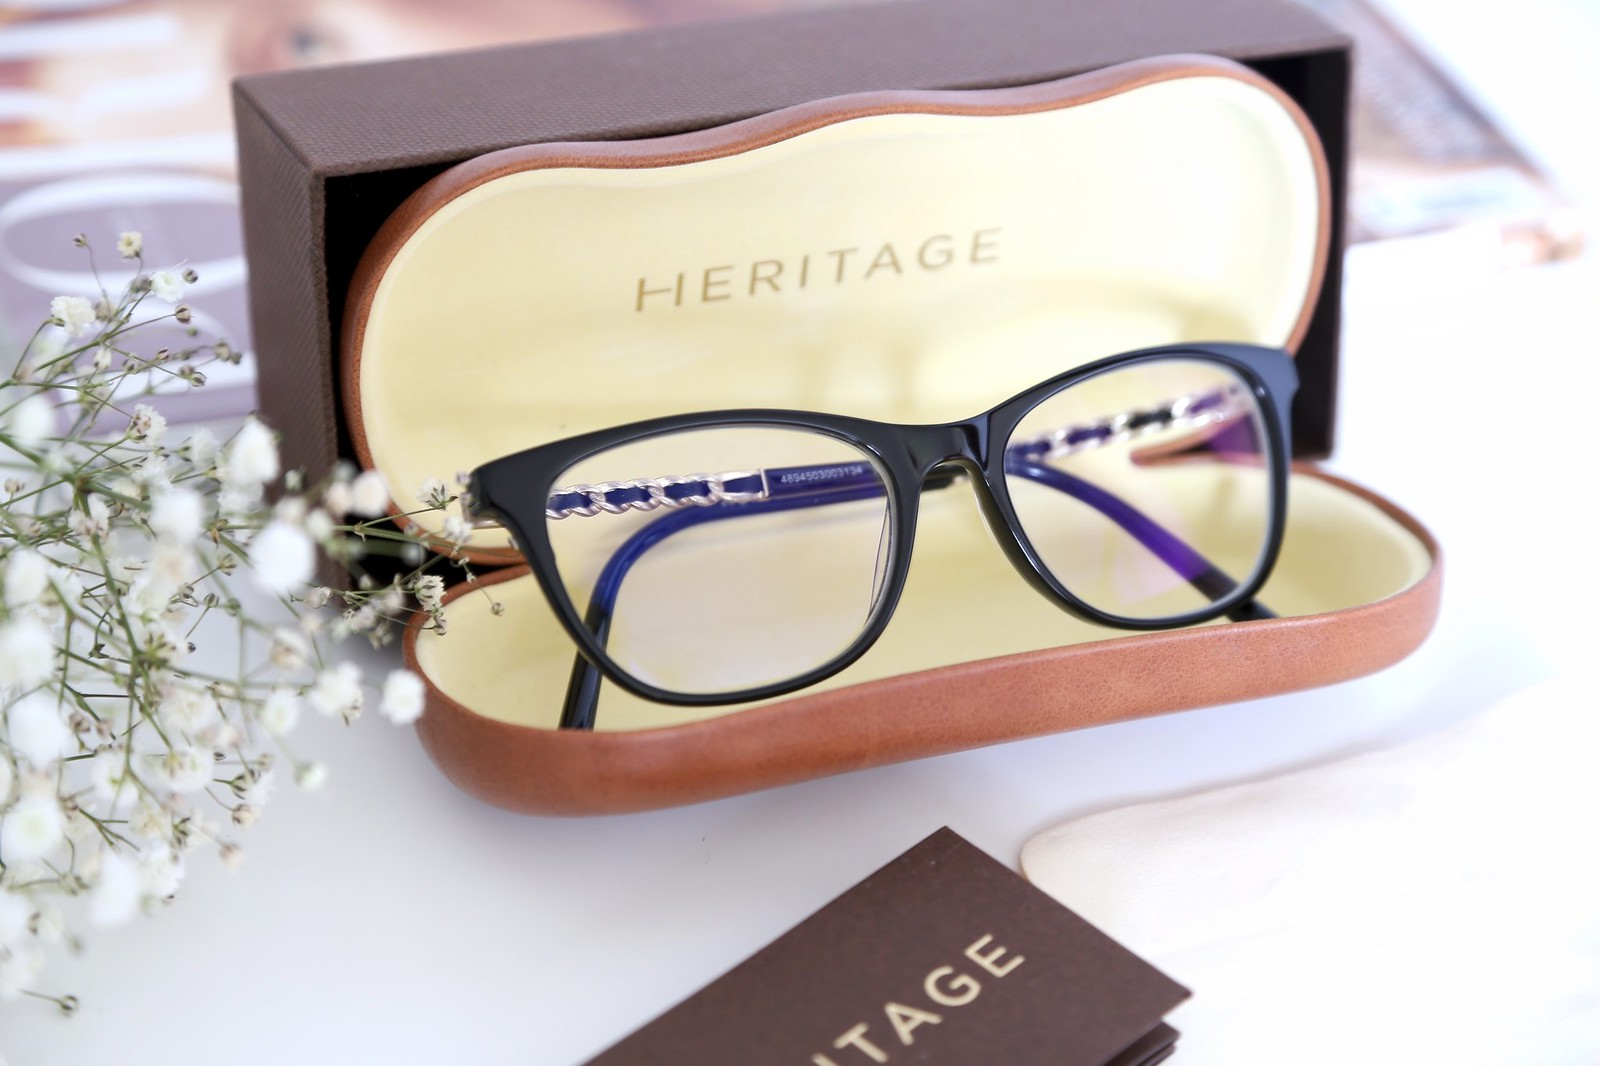 visionexpress, heritagecollection, glasses, heritageglasses,